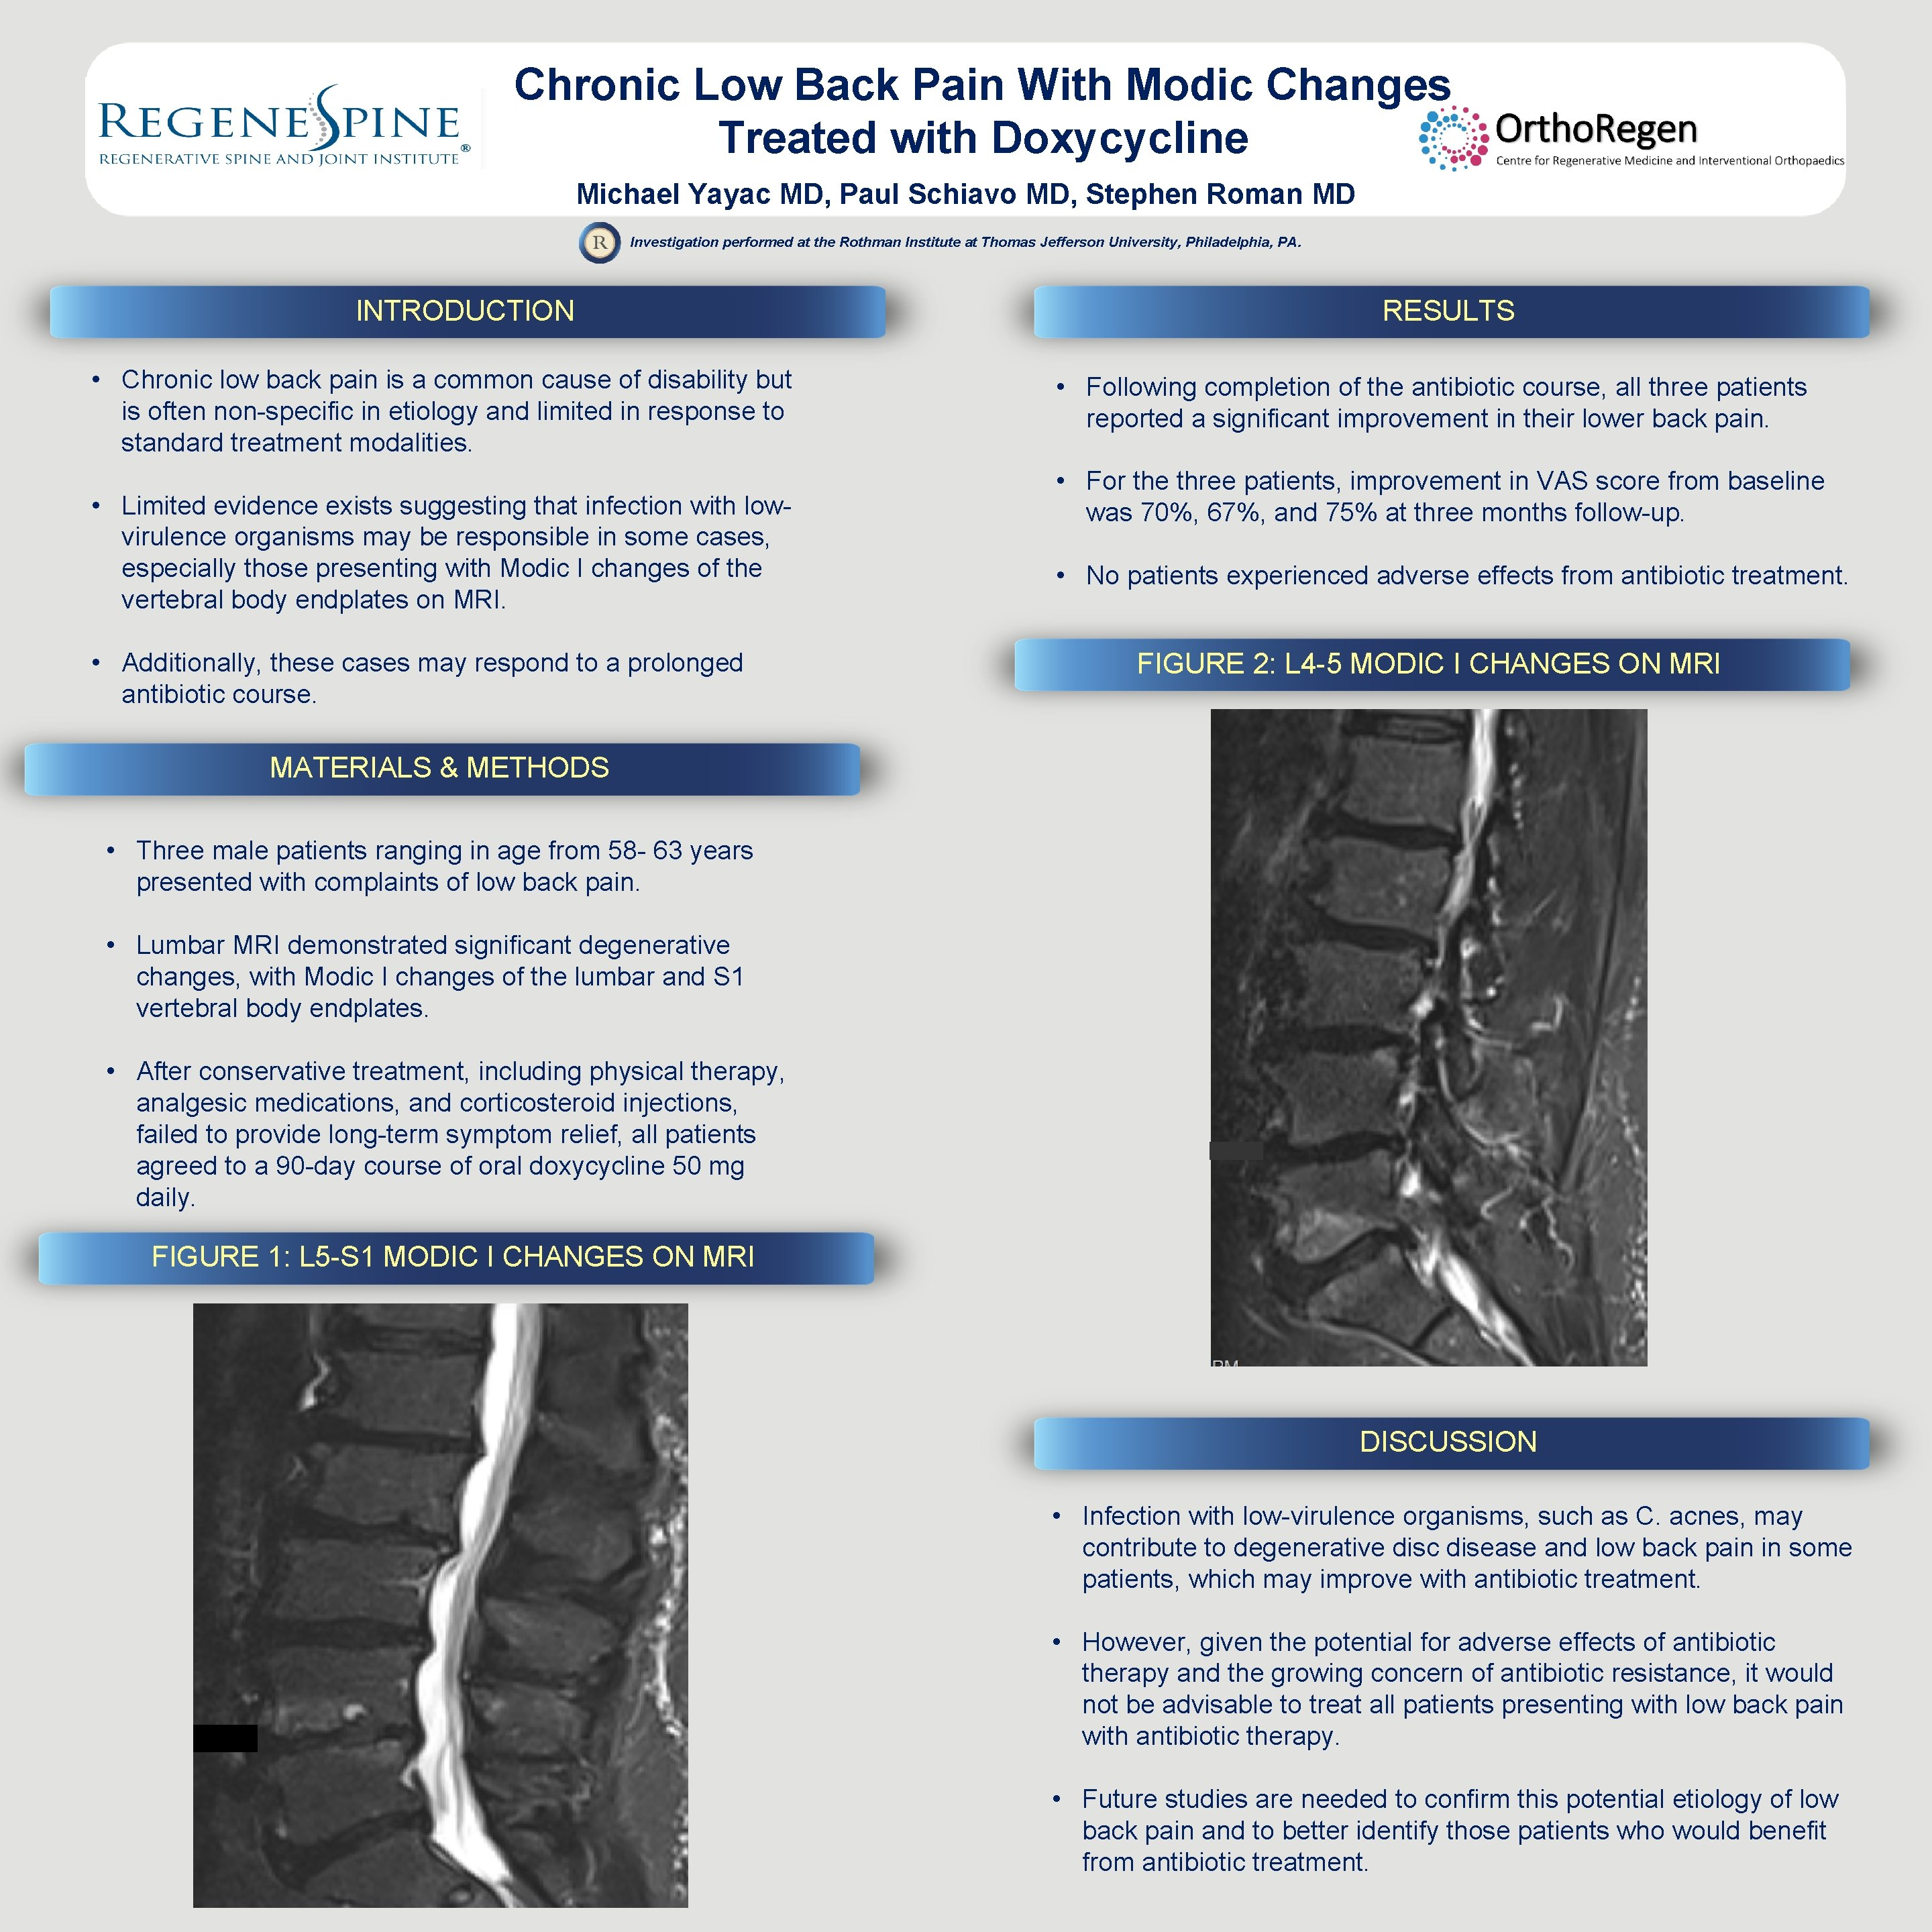 Chronic Low Back Pain With Modic Changes Treated with Doxycycline Michael Yayac MD, Paul